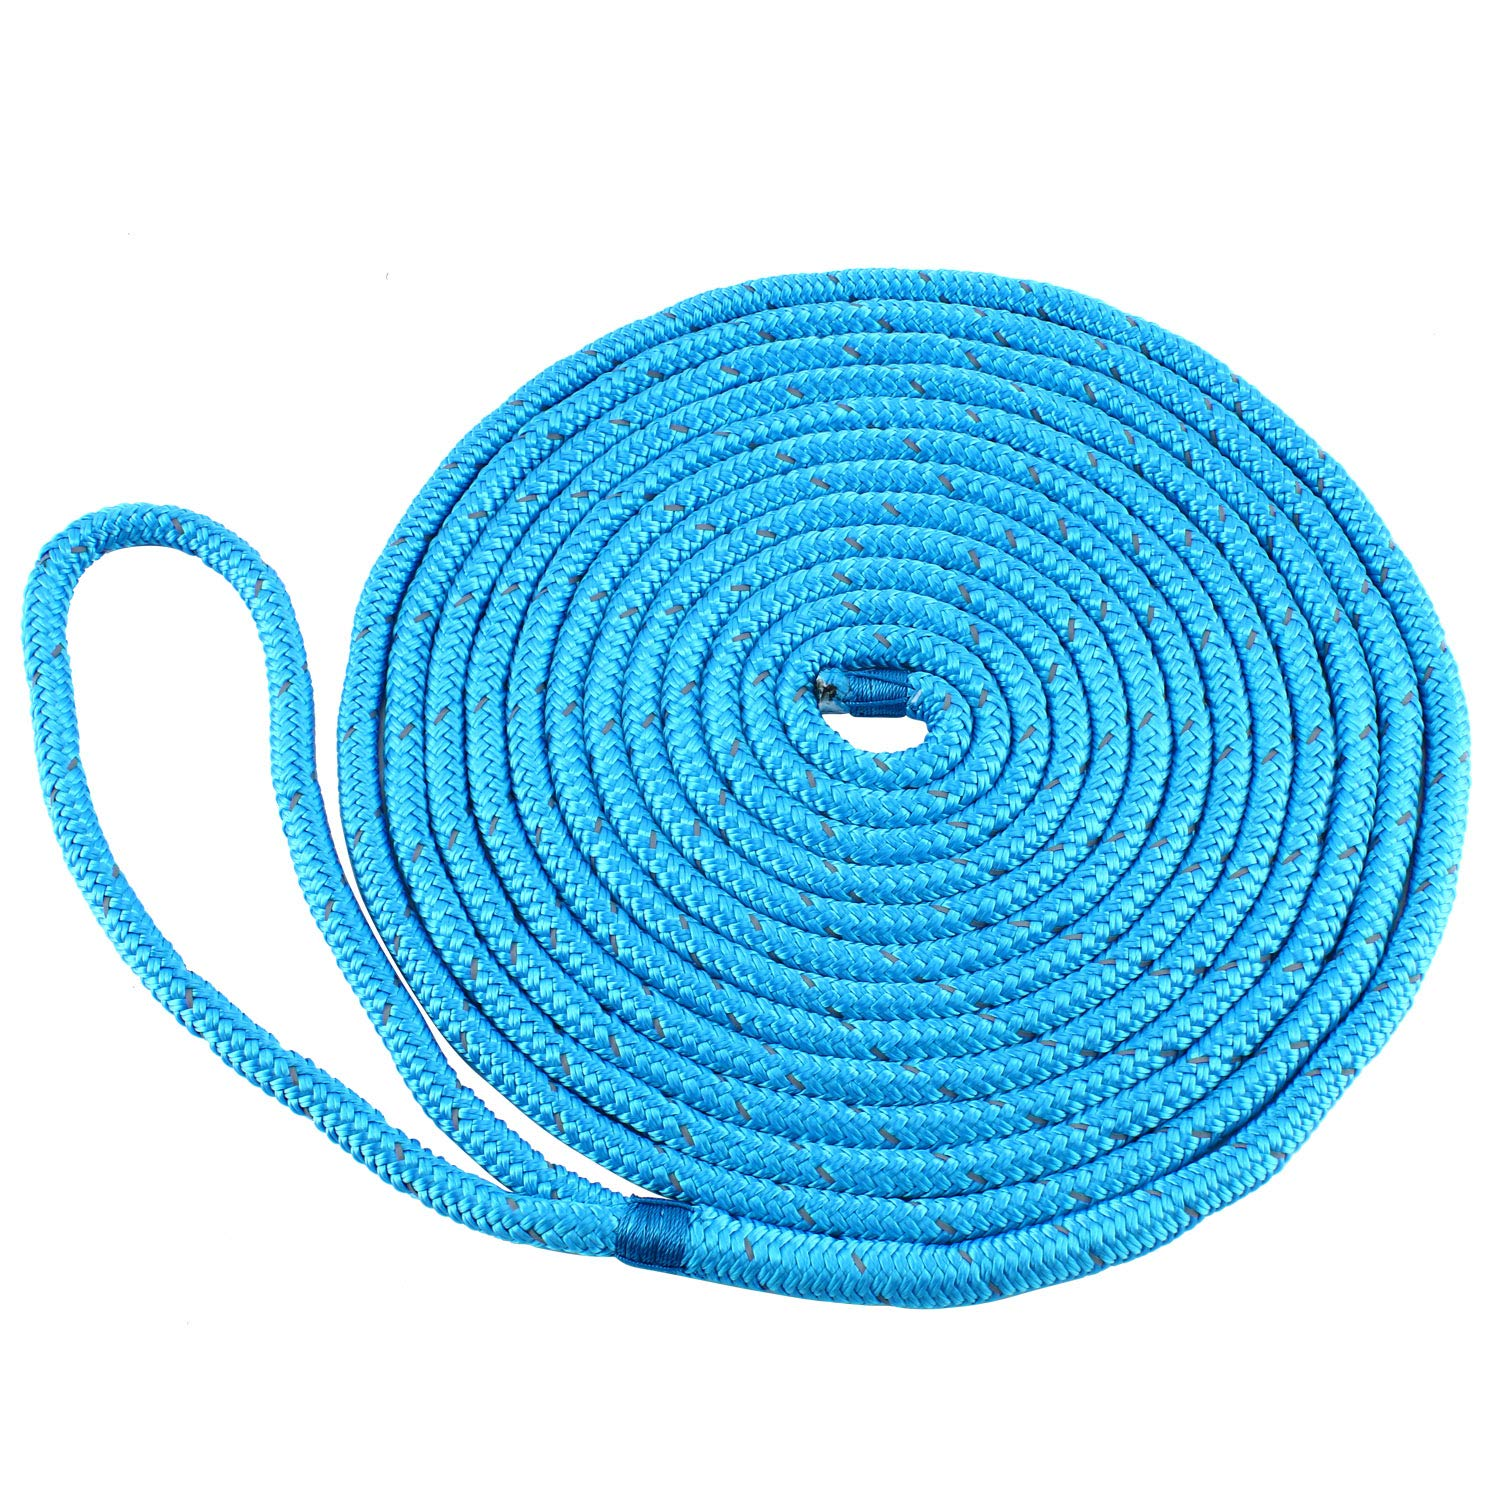 Amarine Made 3/8 Inch 15 FT Reflective Double Braid Nylon Dockline Dock Line Mooring Rope Double Braided Dock Line,Color : Black, White, Blue